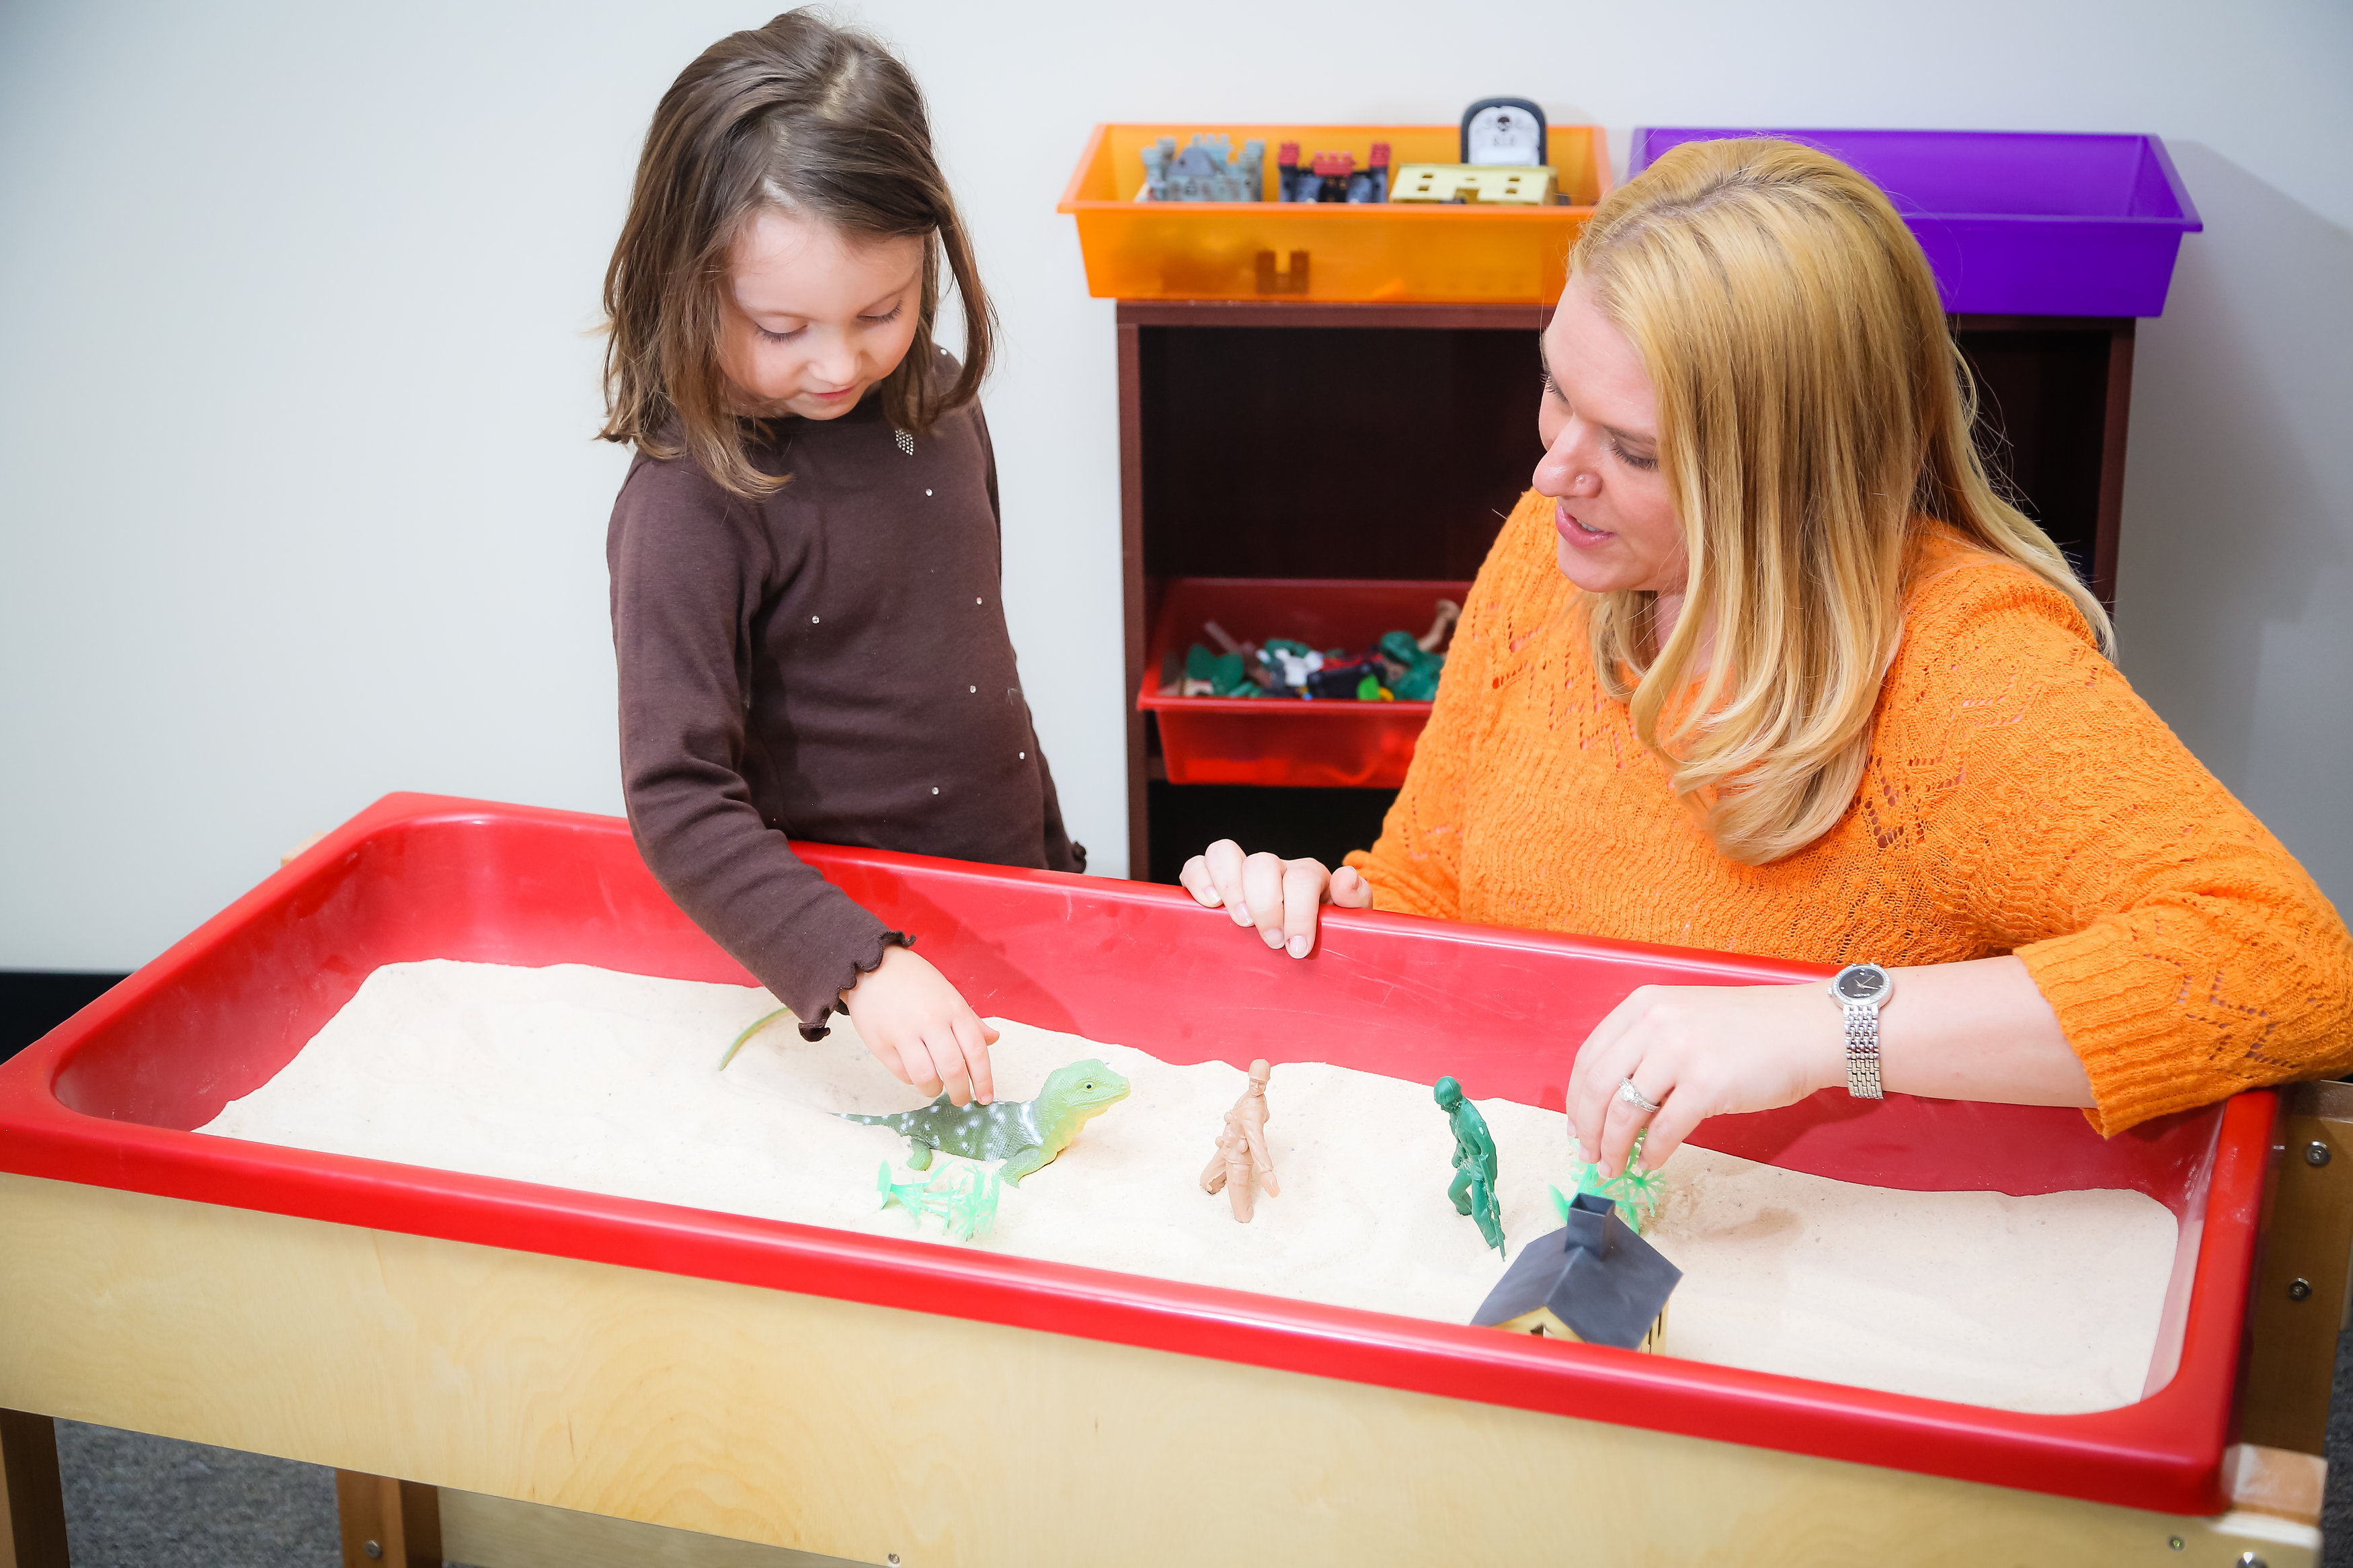 Play Therapy Toys : Play therapy back on track counseling